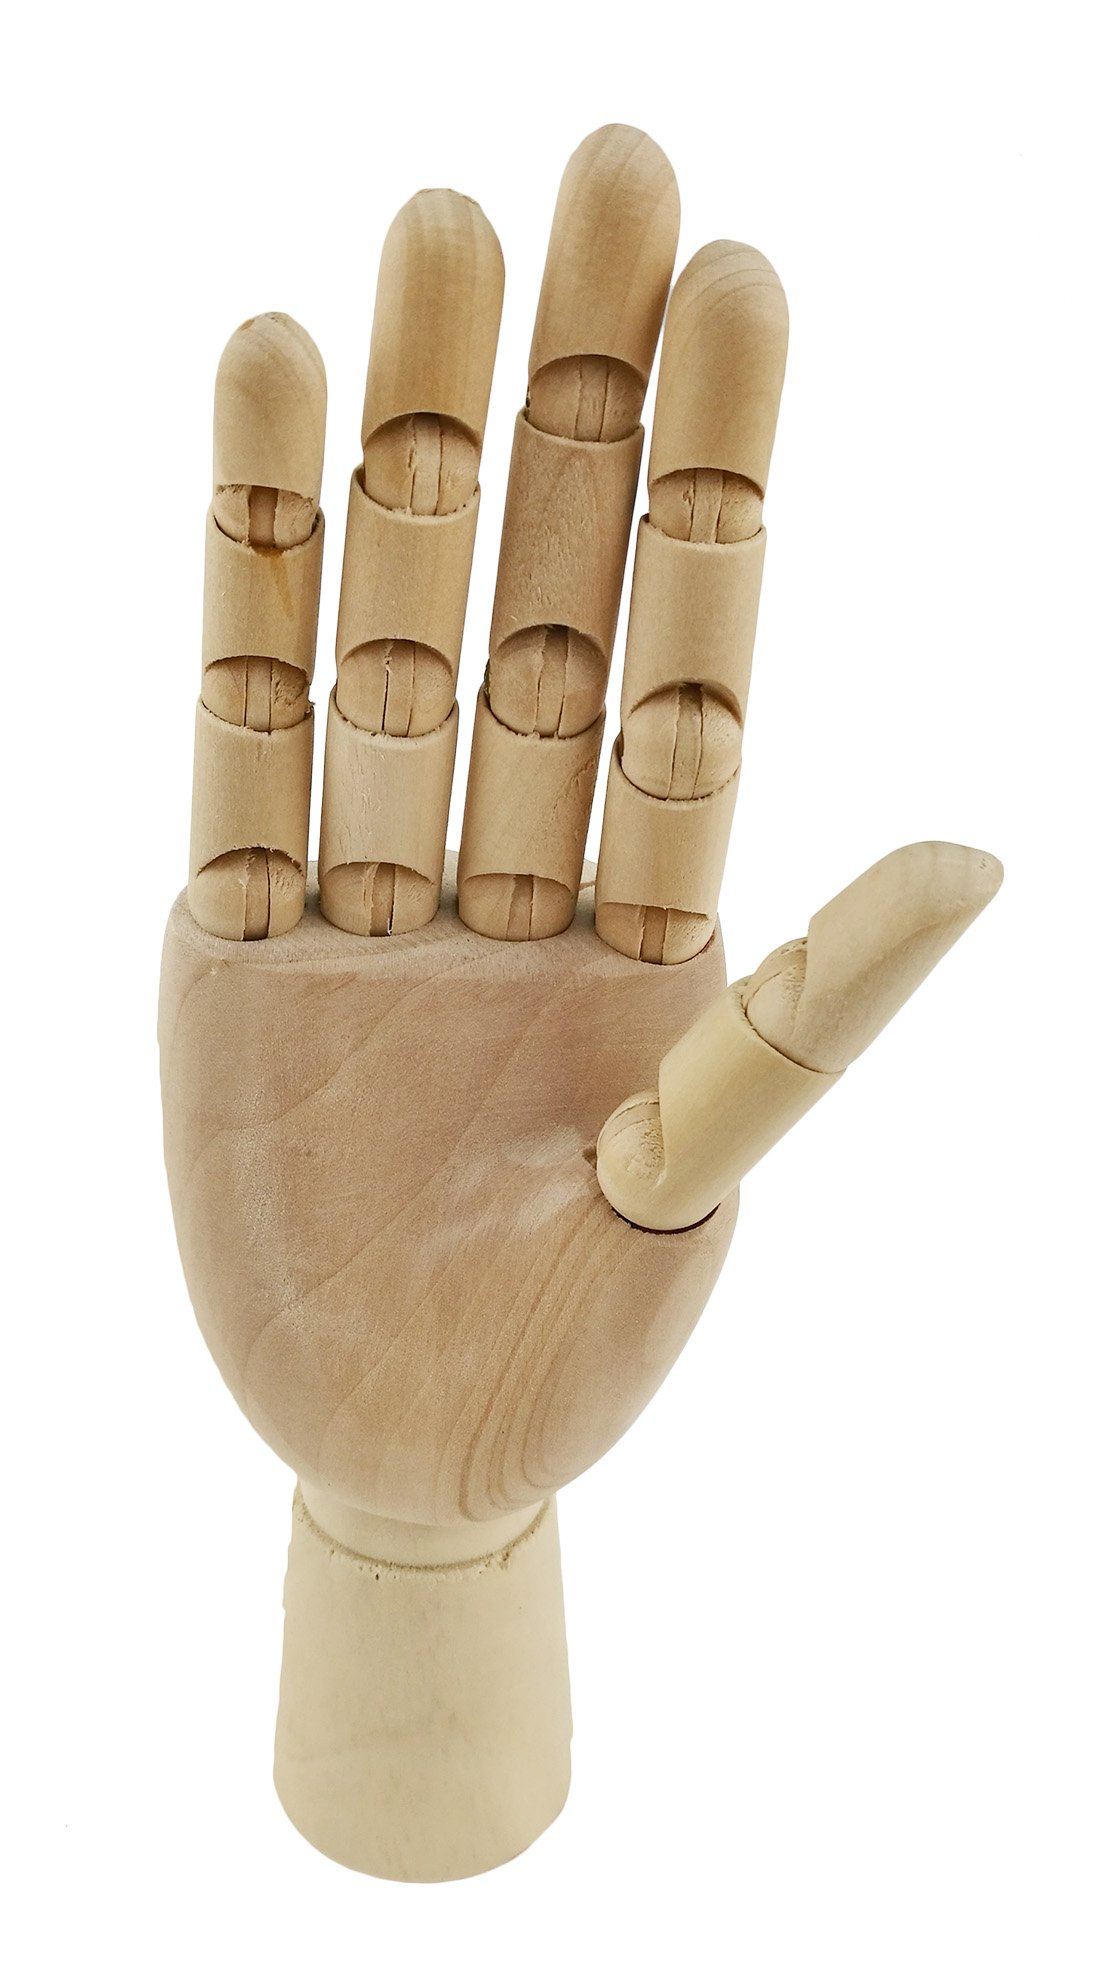 Wooden Pine Movable Hand Joint Model For Art Mannequin Sketch Reference Home Decor (Right Hand)